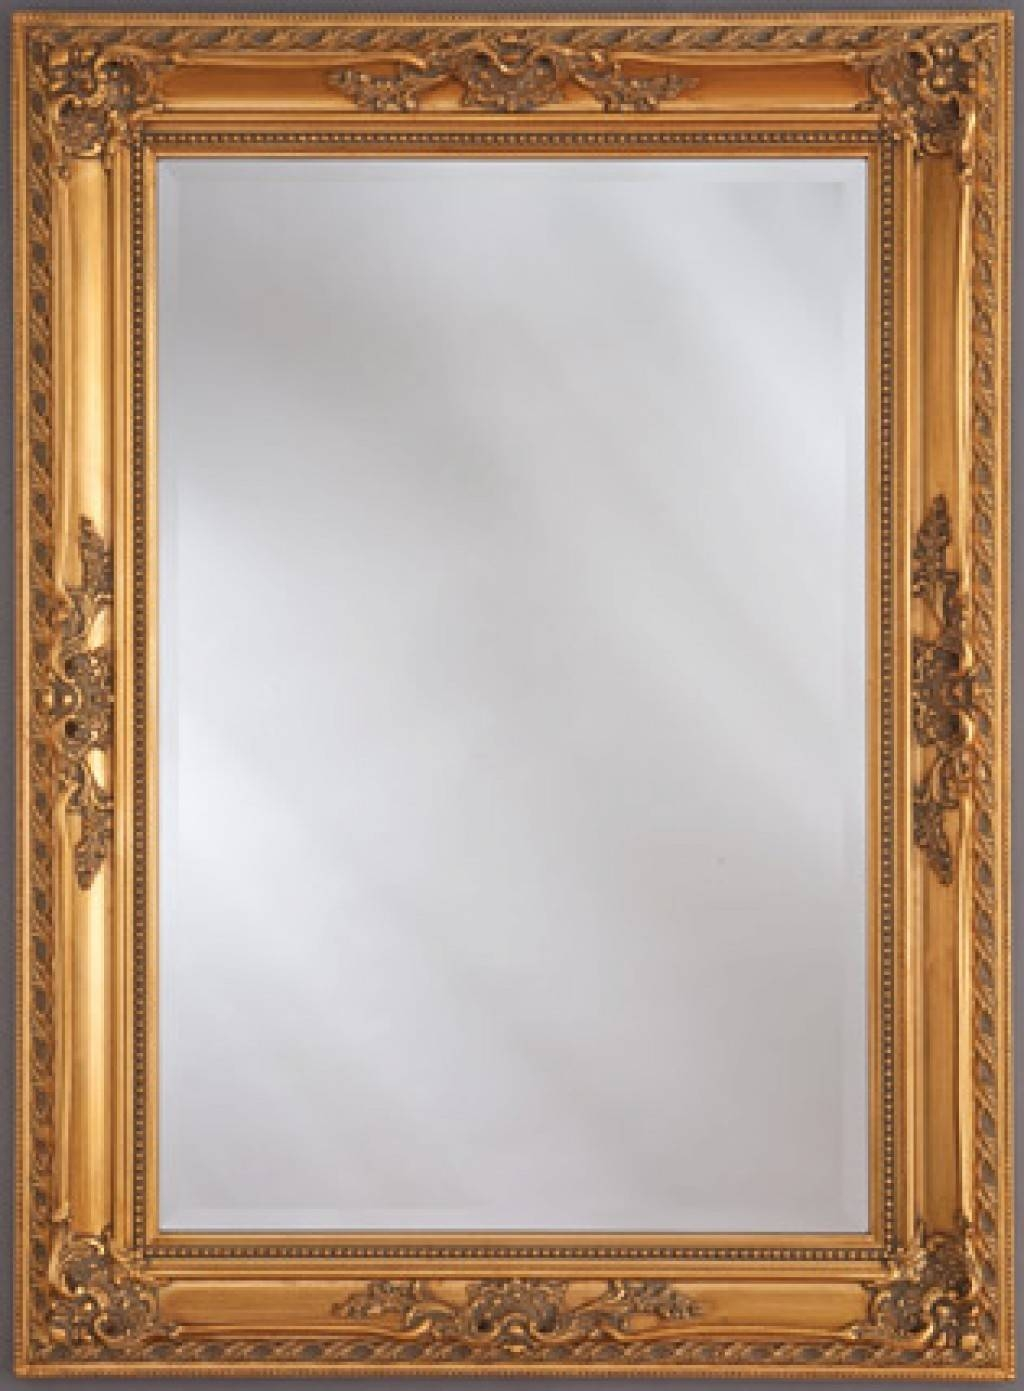 Bm 106 Antique Gold - Buy A Mirror Uk pertaining to Gold Antique Mirrors (Image 9 of 25)